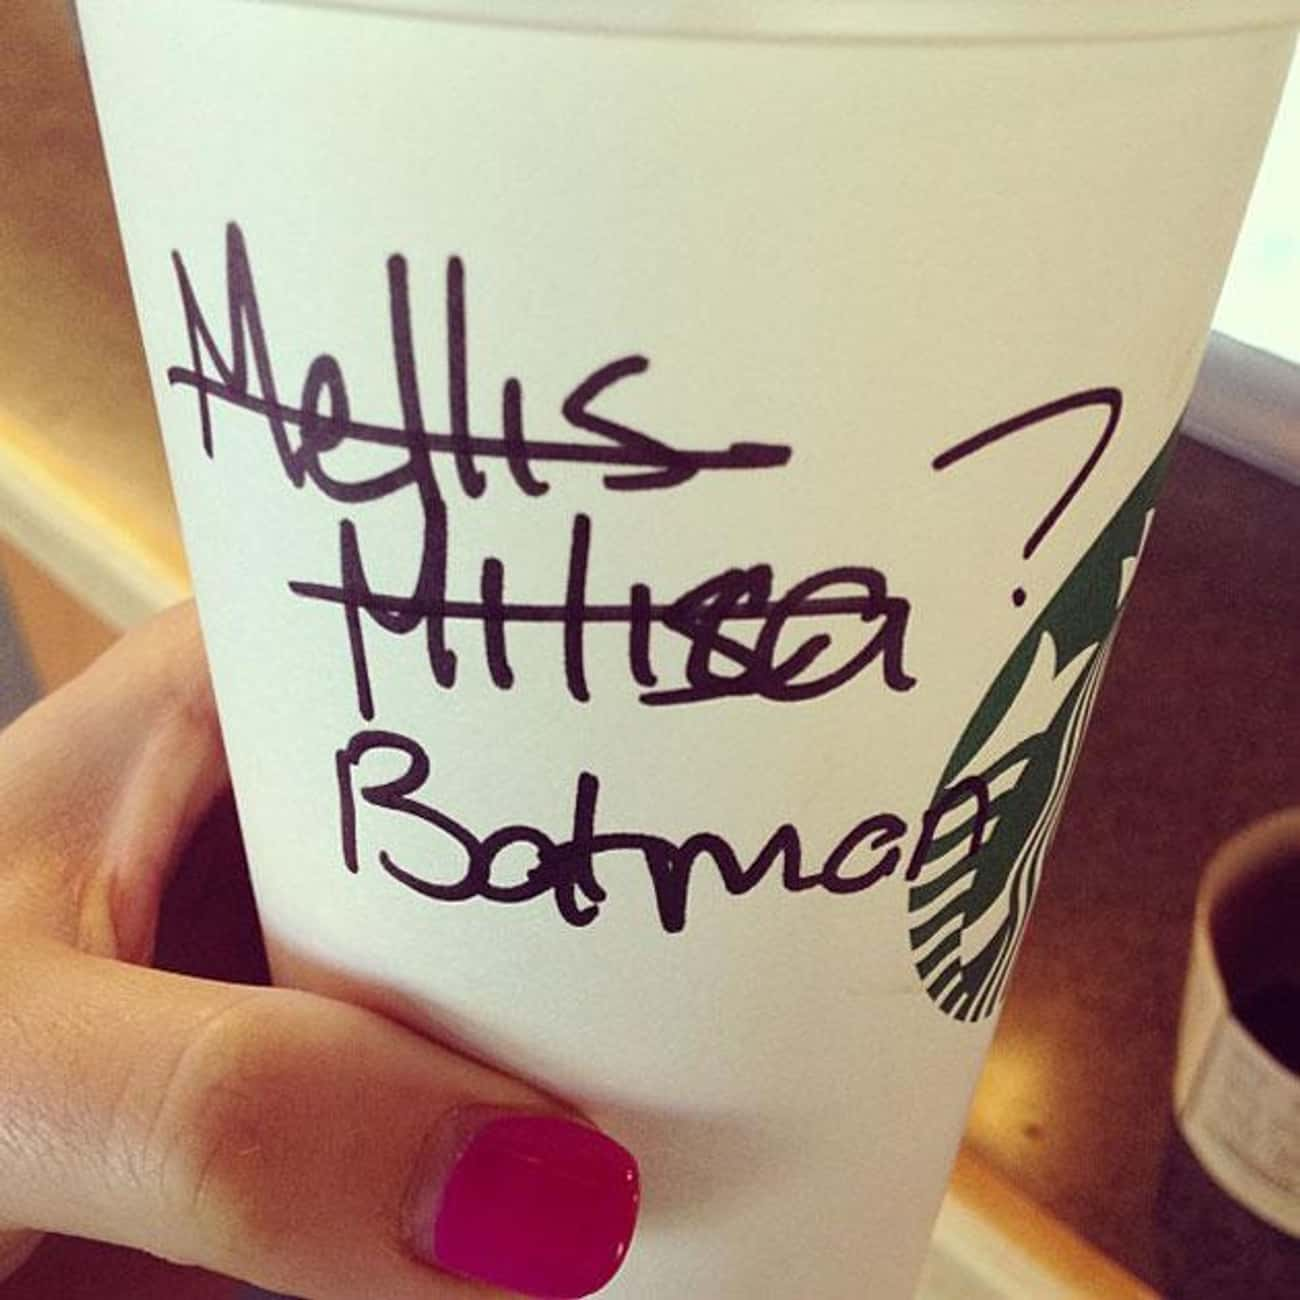 Coffee For Your Alter Ego is listed (or ranked) 1 on the list The 11 Best Starbucks Cup Spelling FAILs of All Time